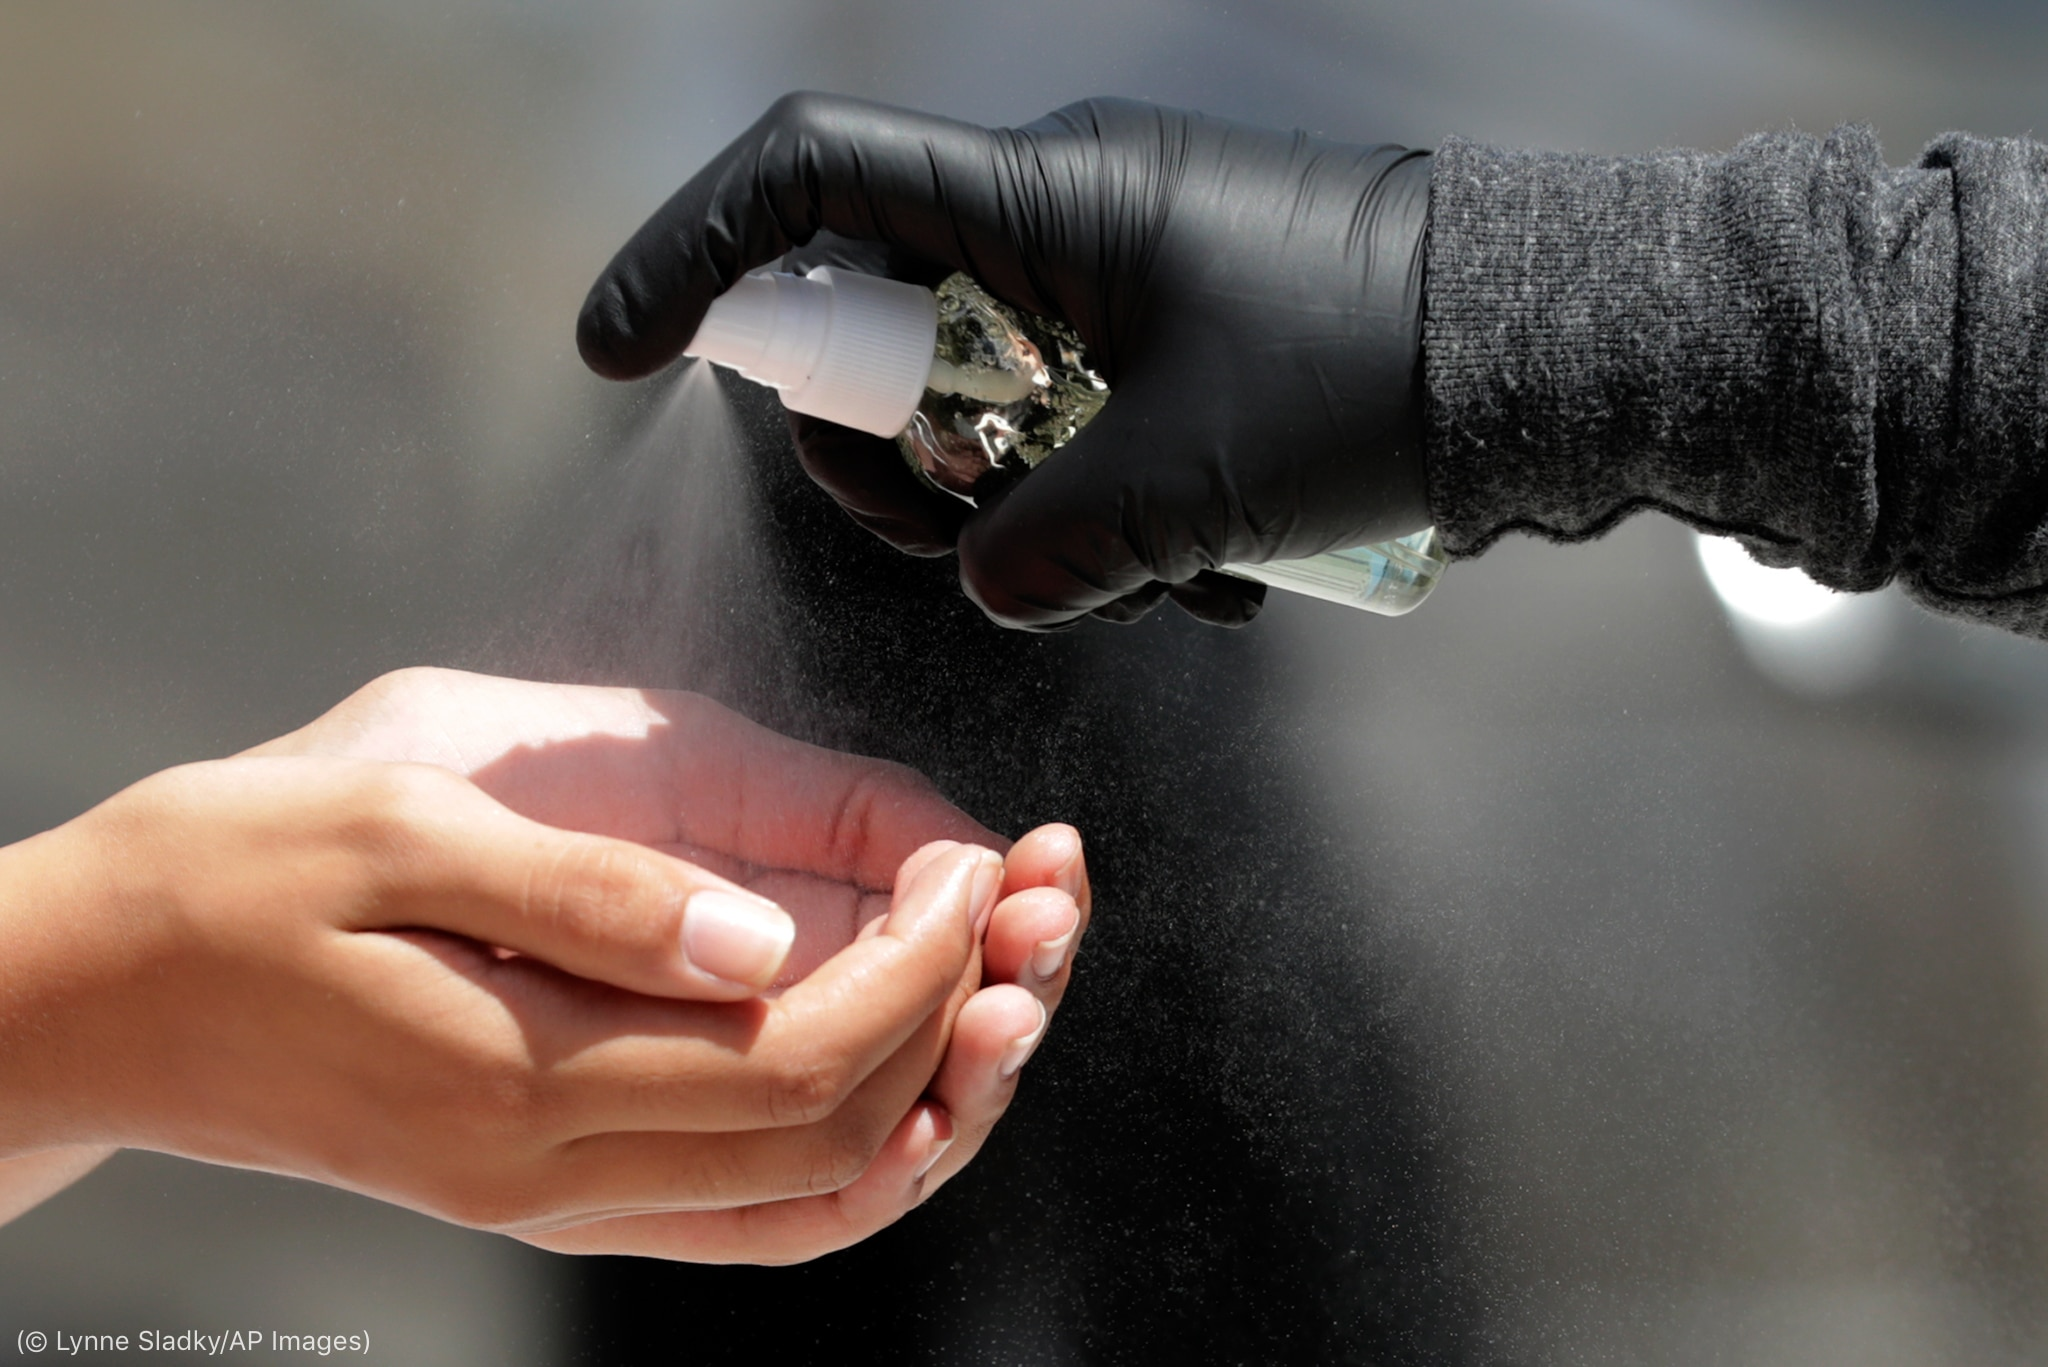 Hand in black glove spraying sanitizer into bare hands of another person (© Lynne Sladky/AP Images)